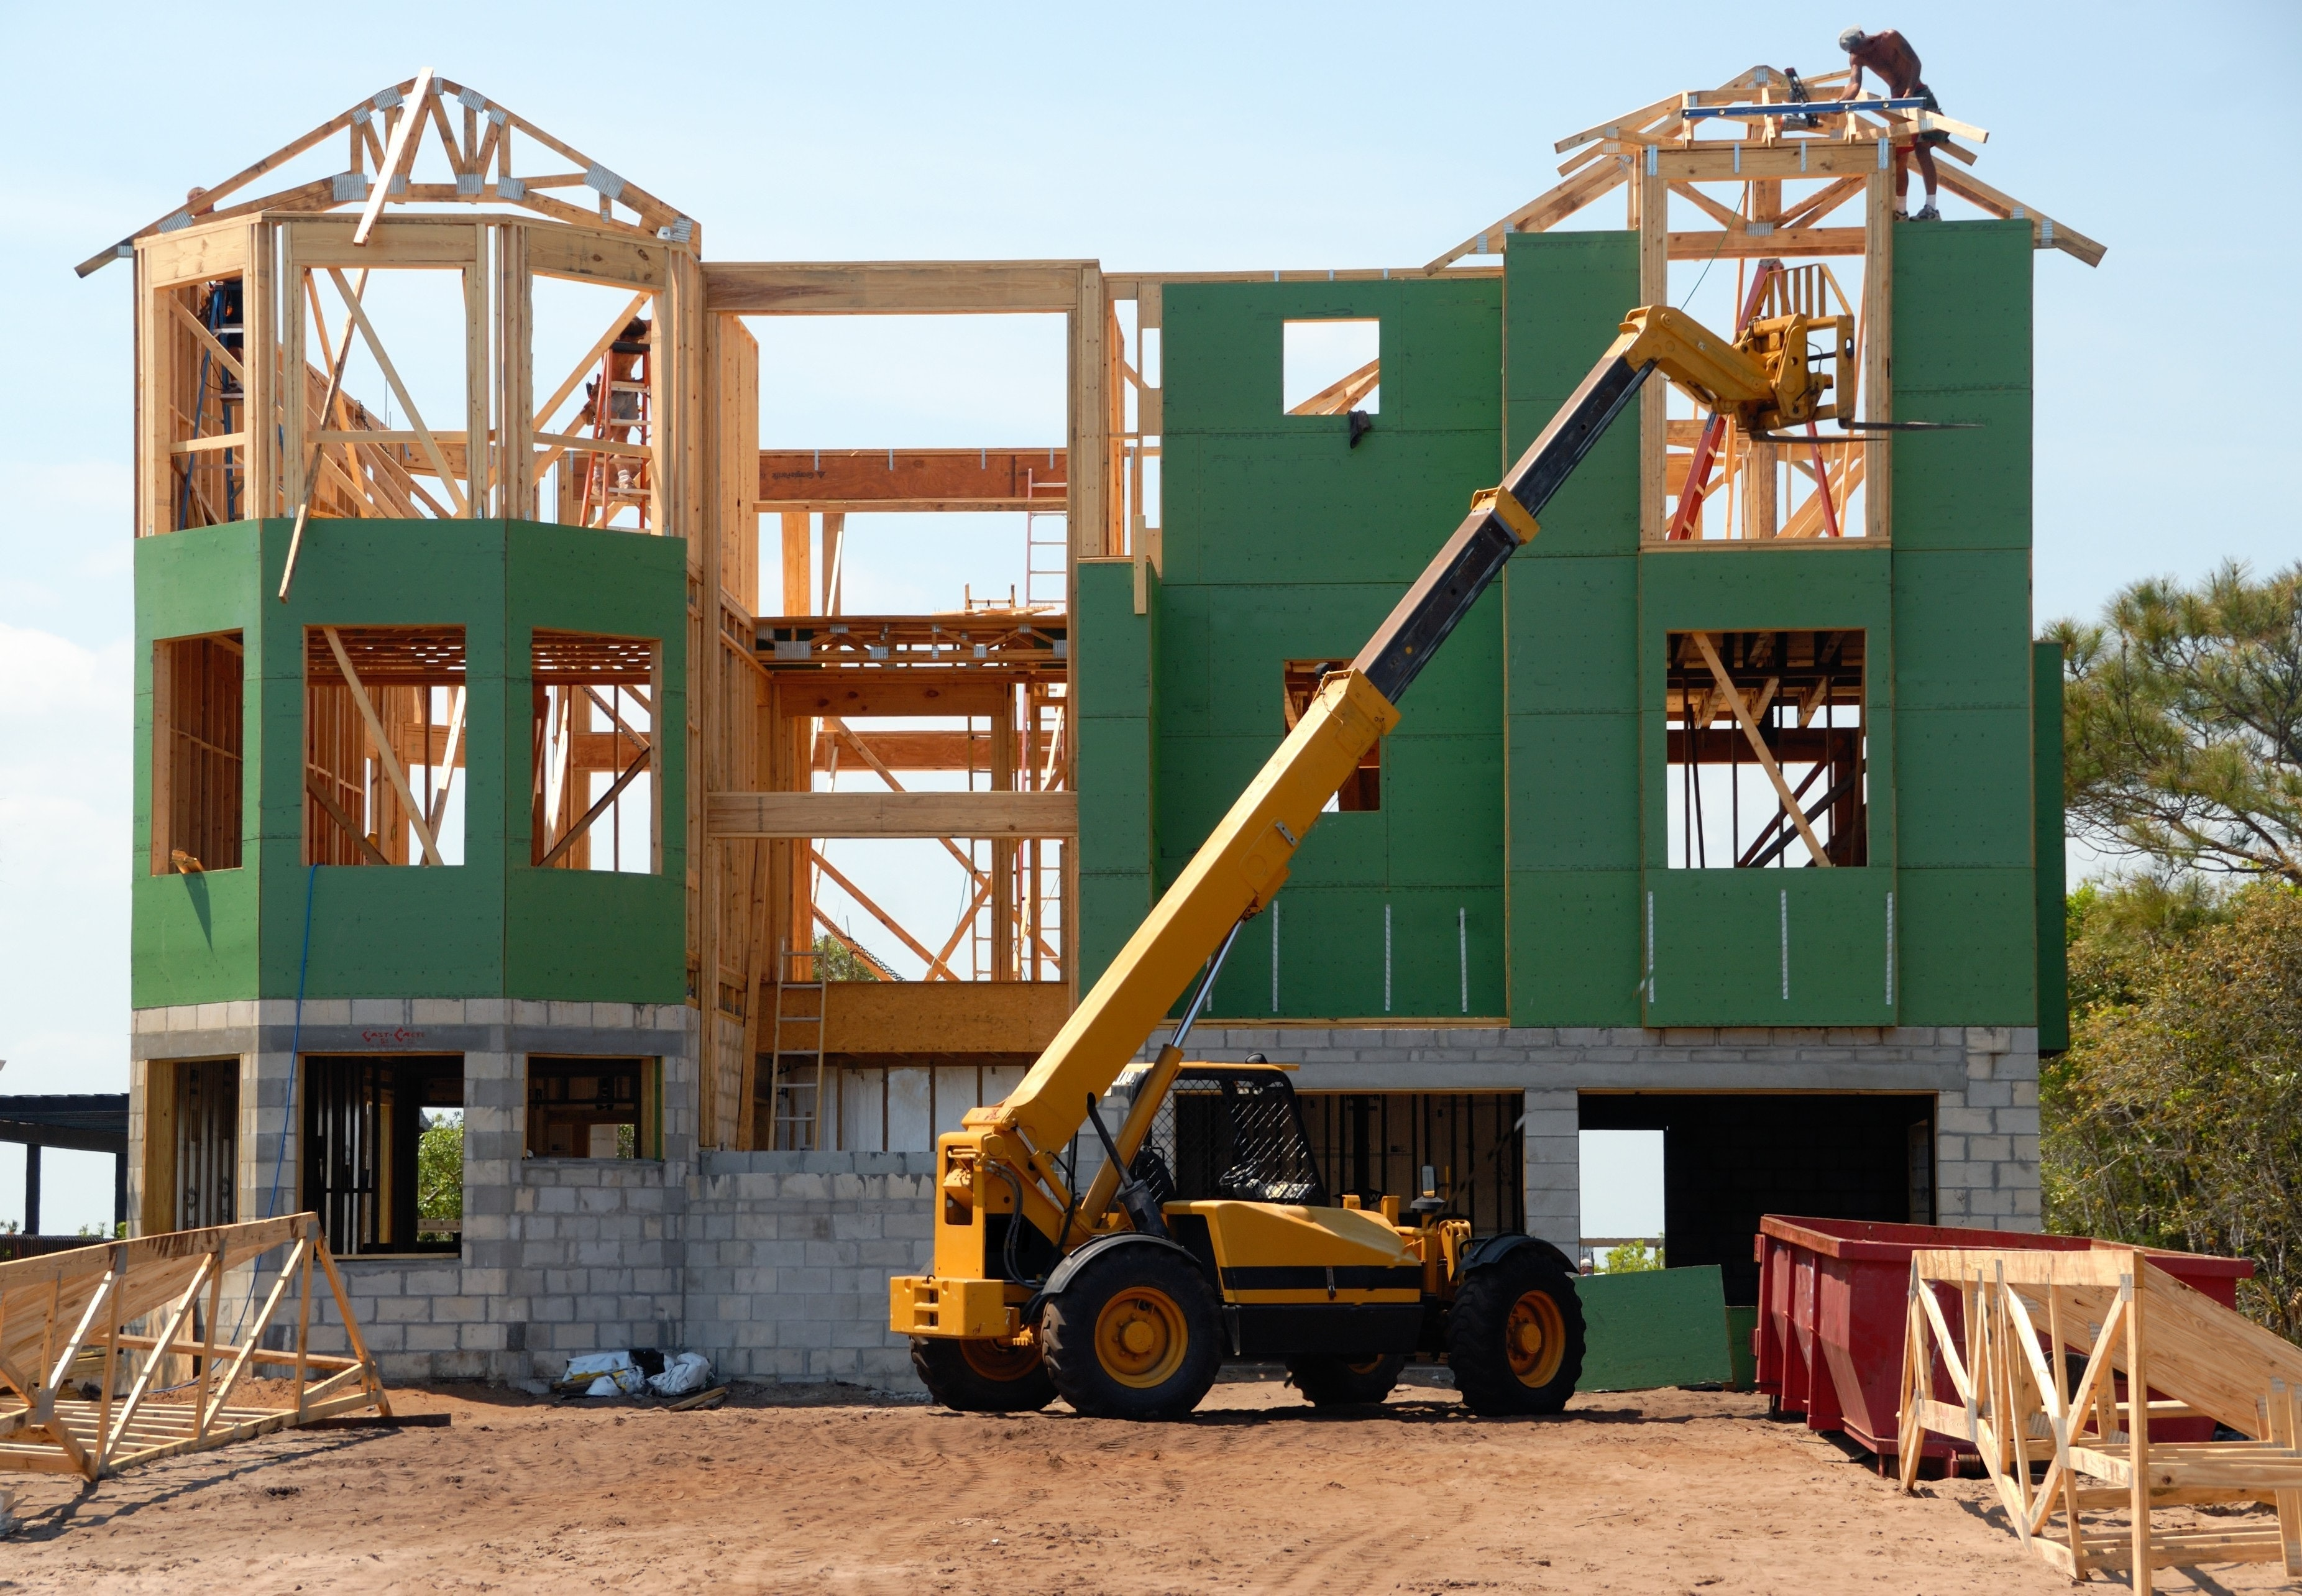 Under-construction vs.Ready-to-move-in apartments: What should you buy?